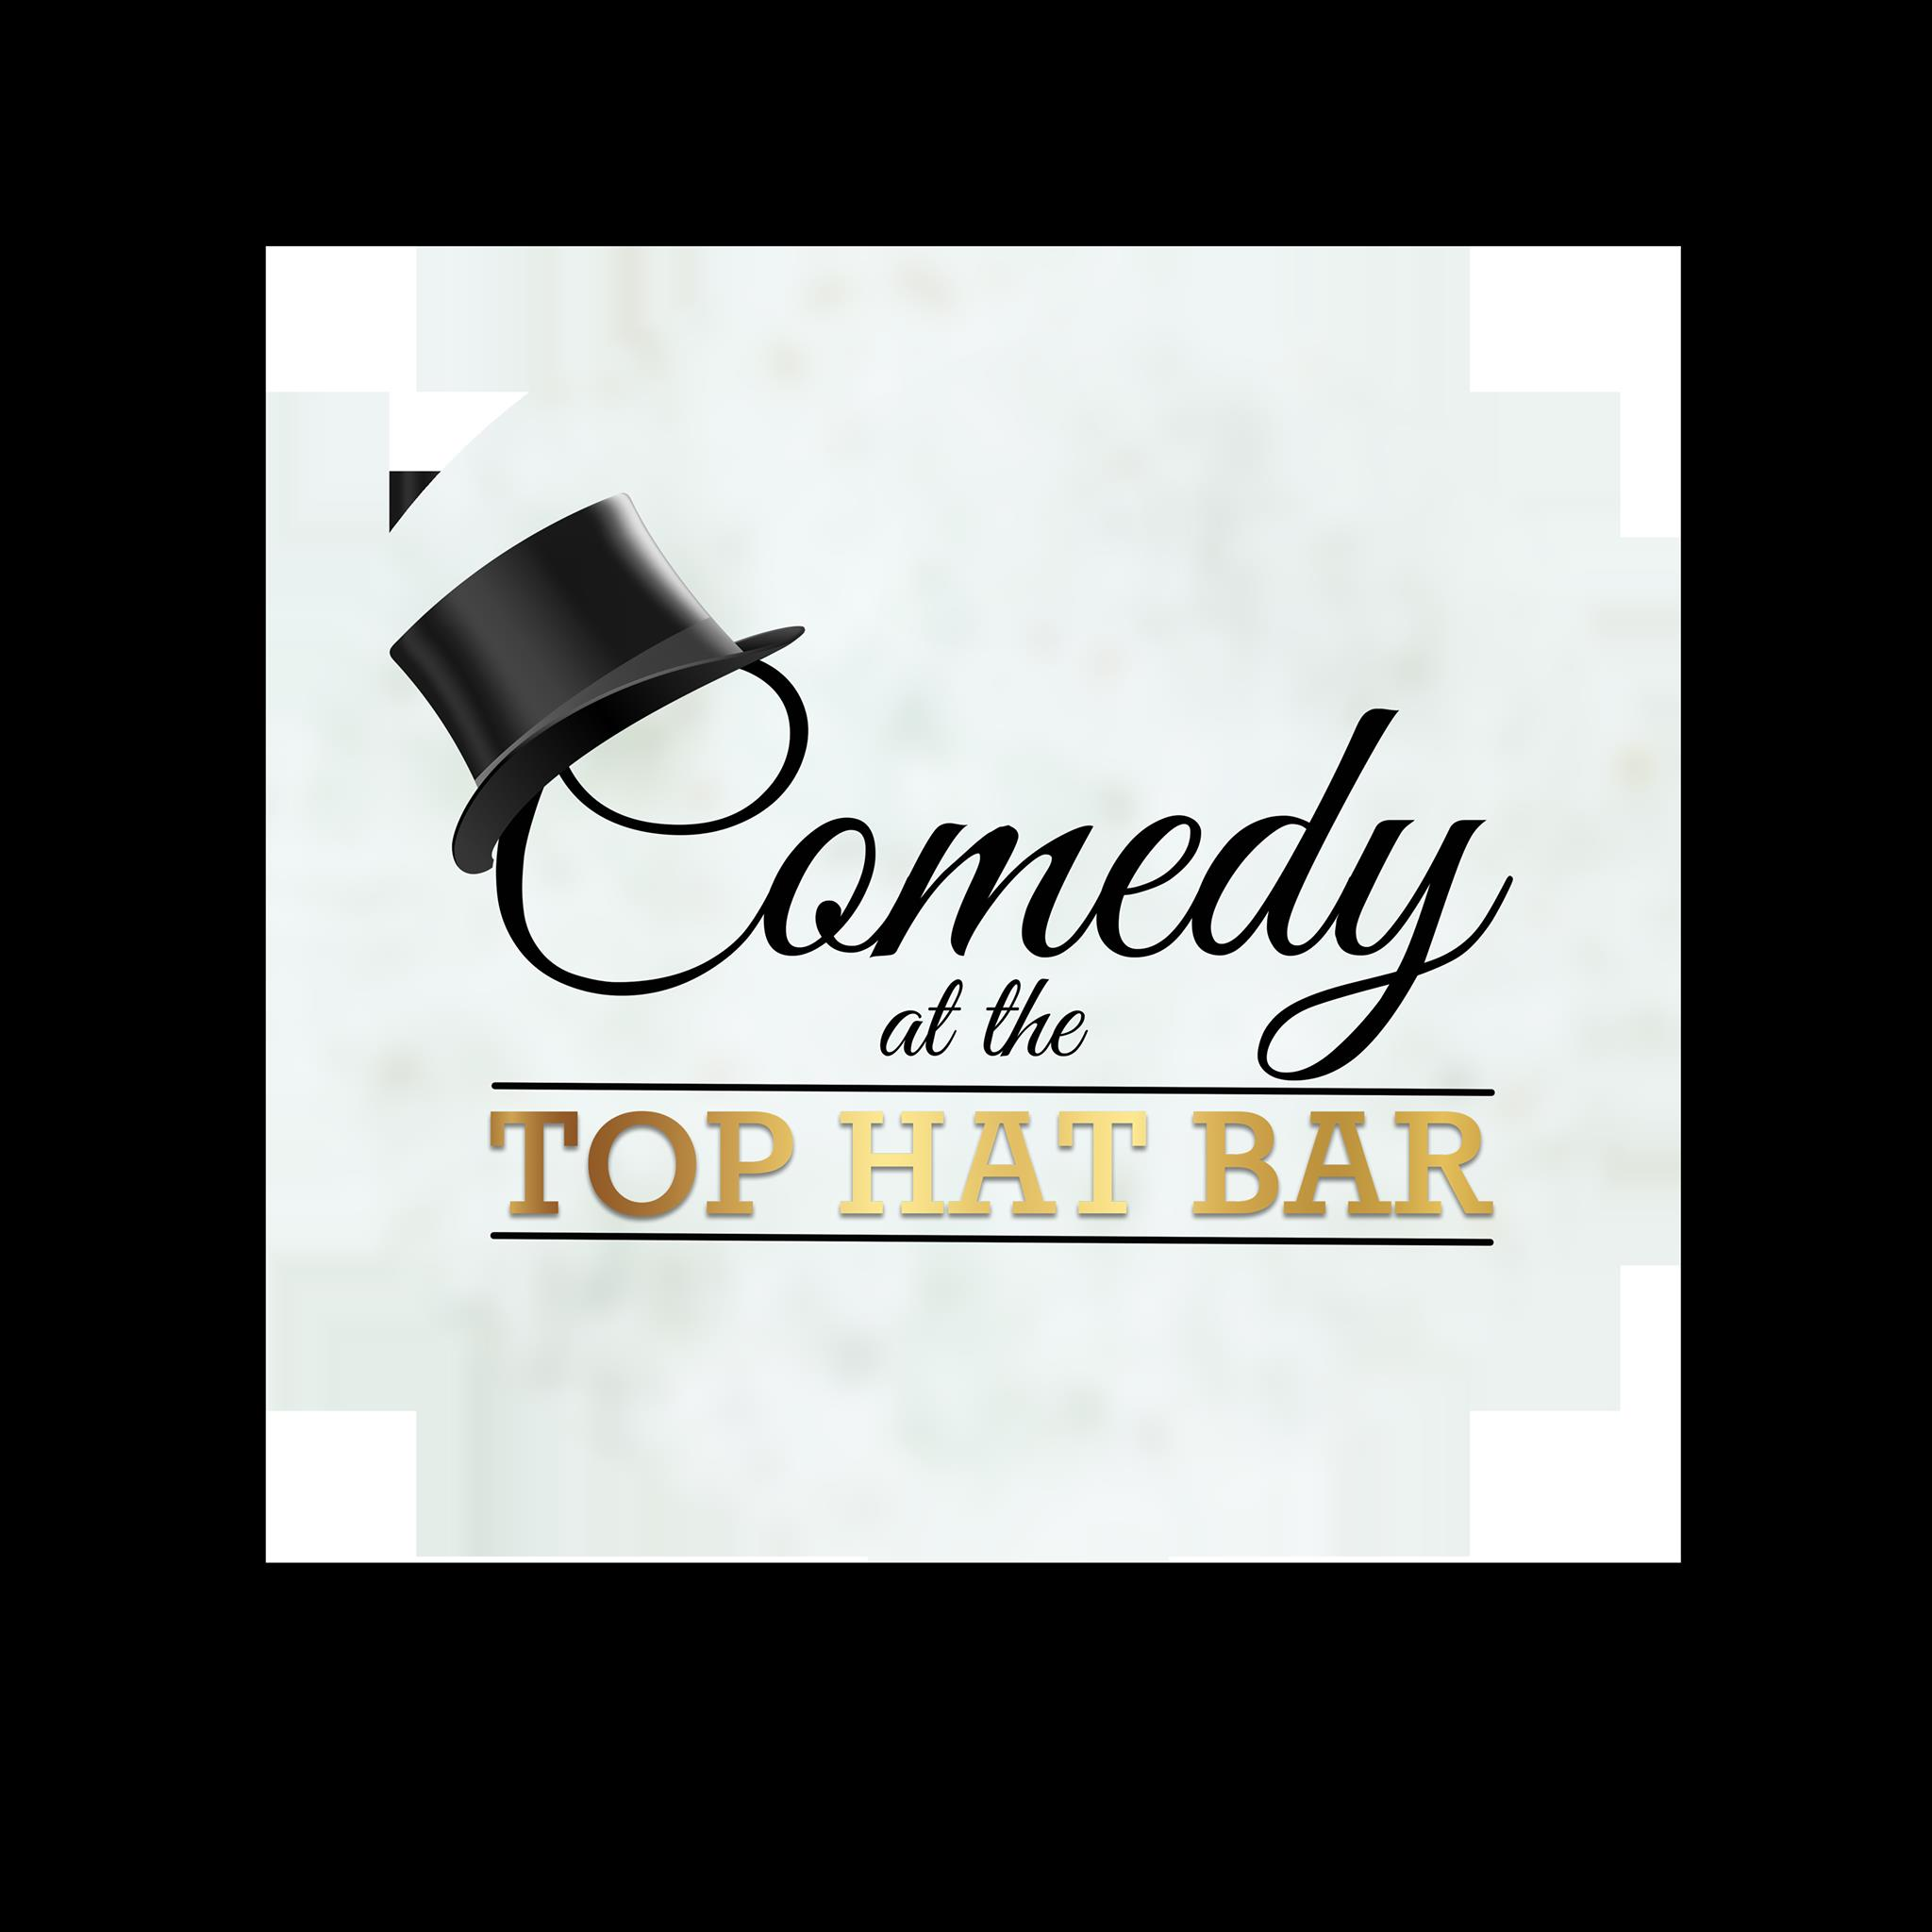 Comedy at the Top Hat Bar